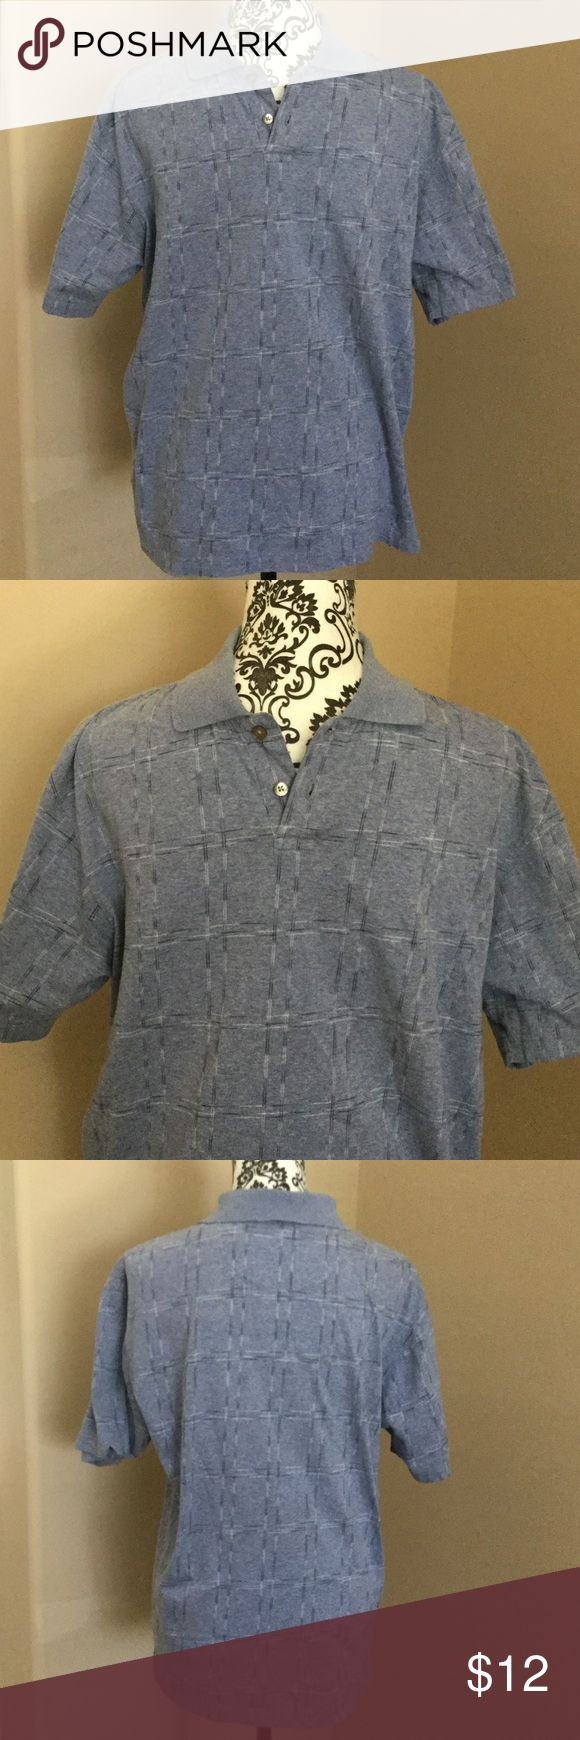 Geoffrey Beene Polished Cotton Polo Shirt size S Geoffrey Beene blue polo shirt polished cotton size small measures 21 inches from armpit to armpit and 27 inches long Geoffrey Beene Shirts Polos